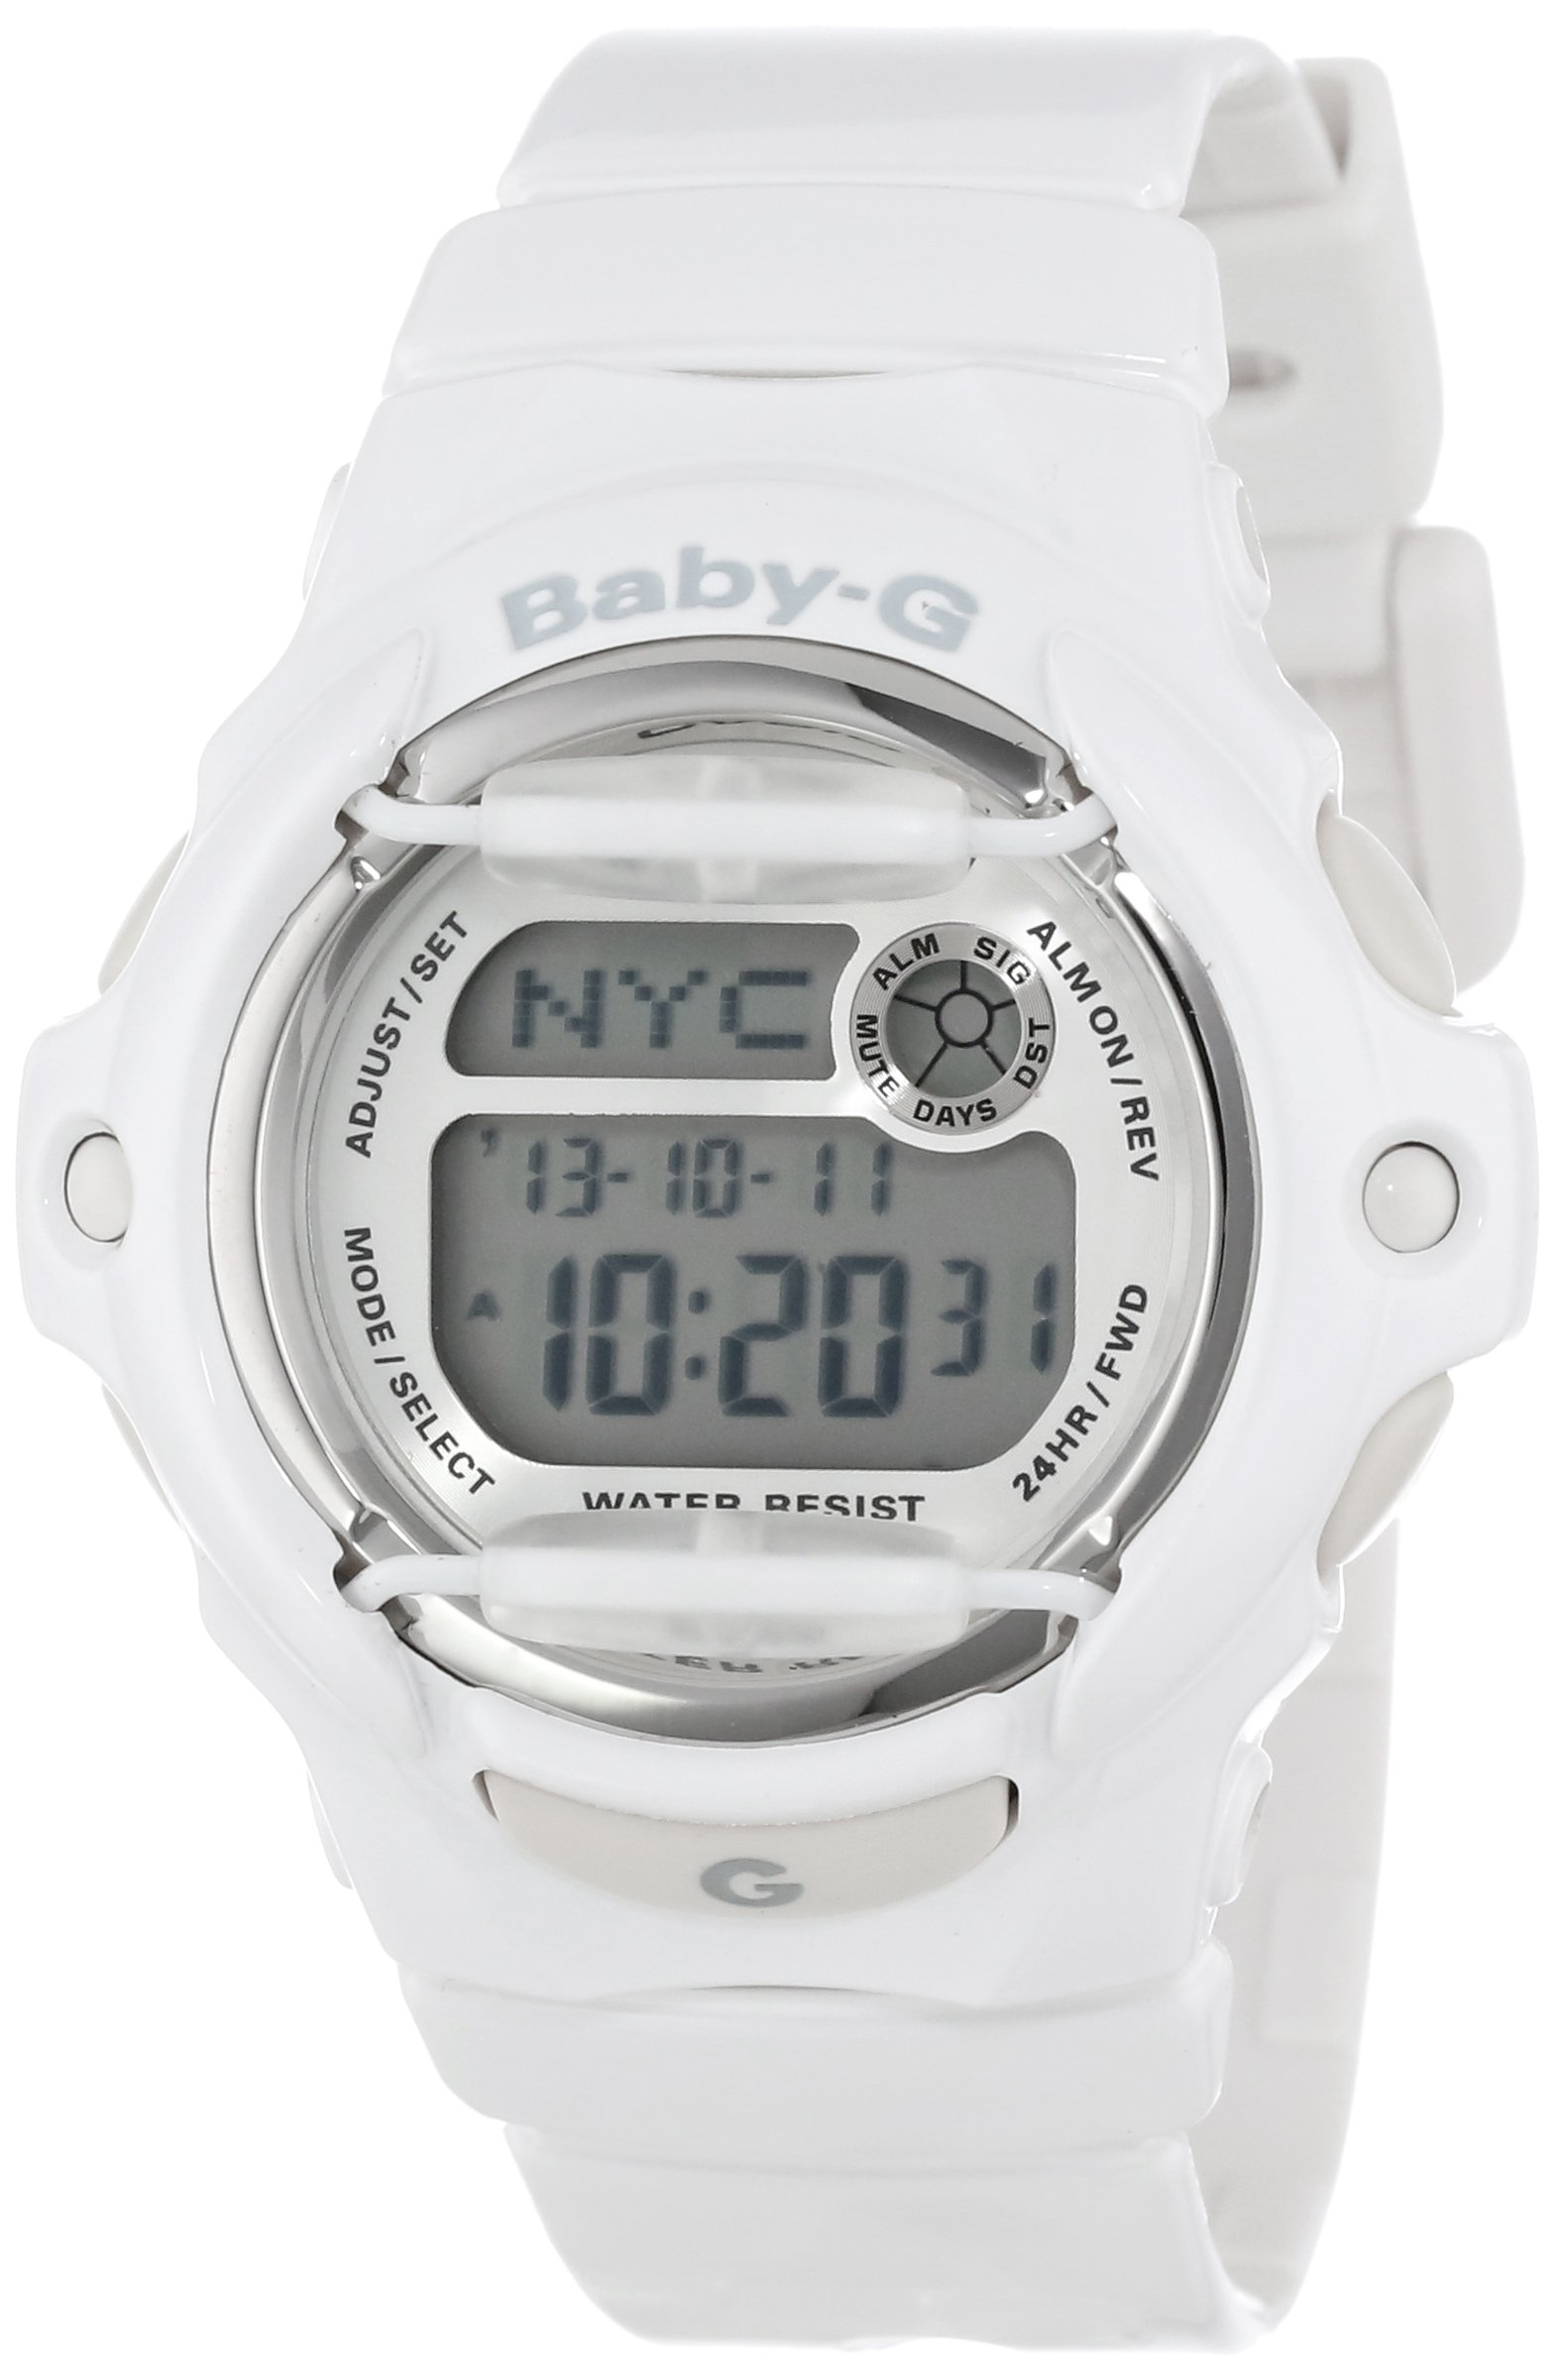 Casio Women's BG169R-7A ''Baby-G'' White Resin Sport Watch